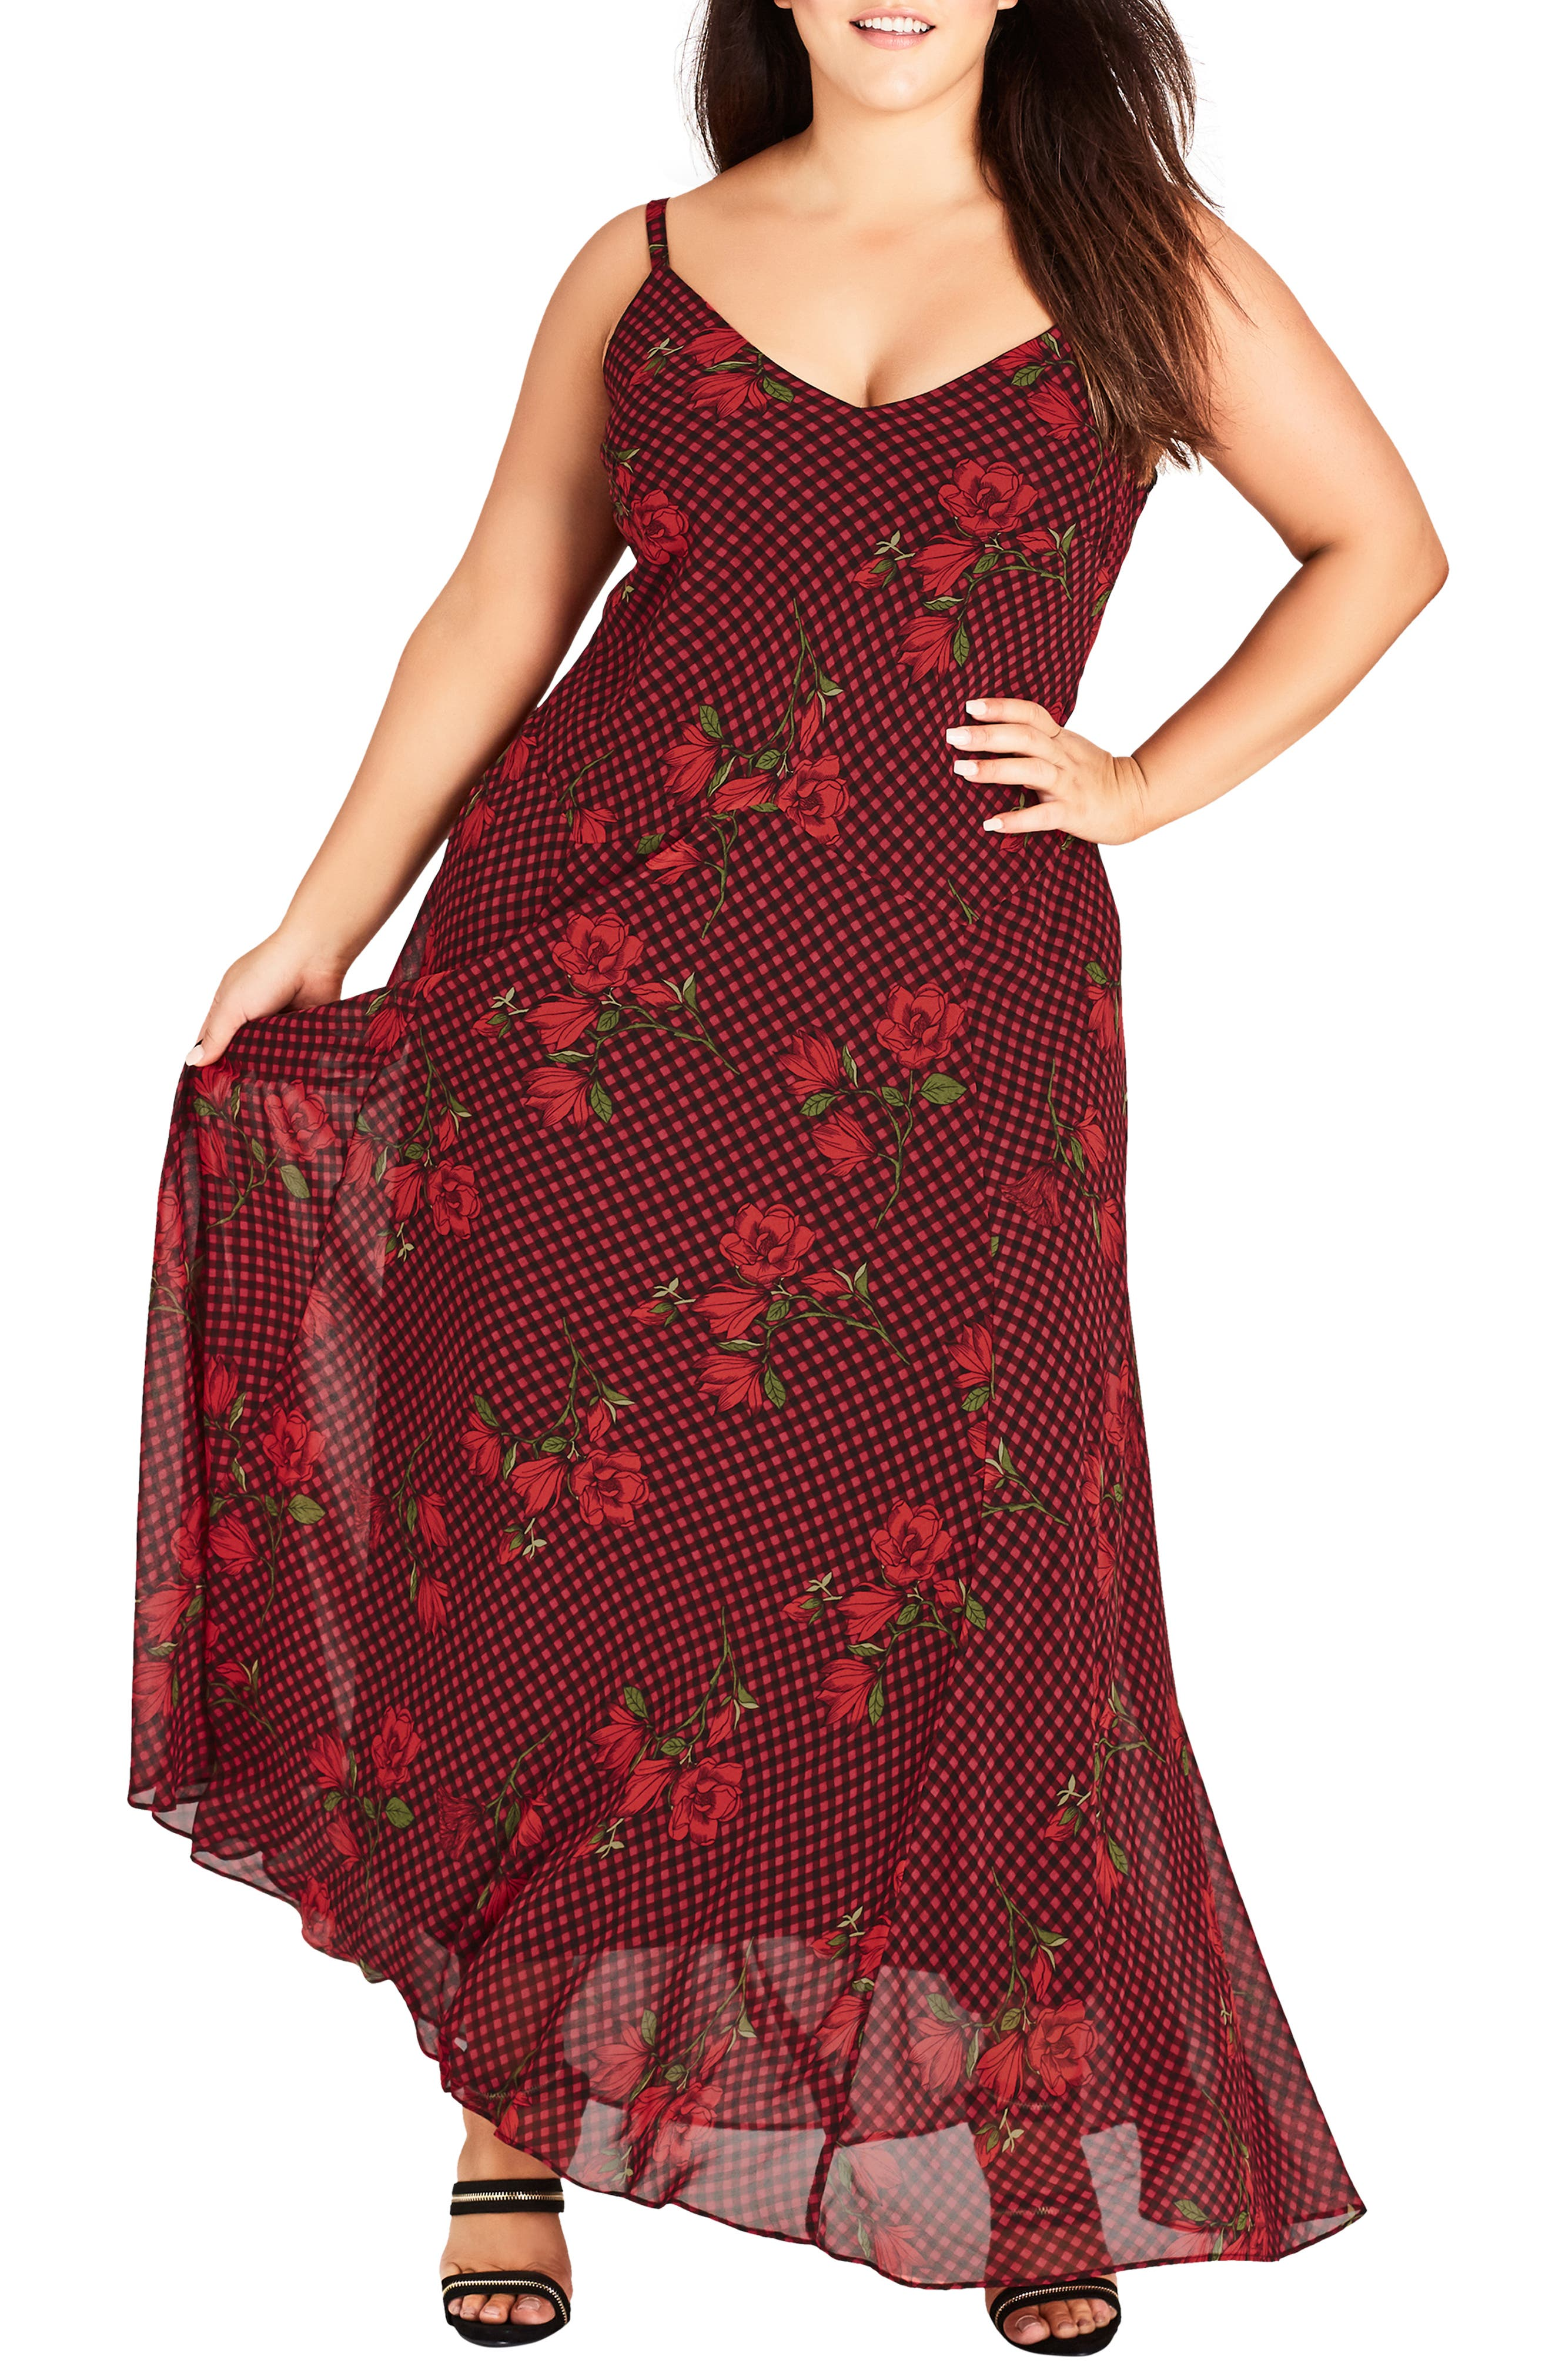 CITY CHIC, Gingham Poppy Maxi Dress, Main thumbnail 1, color, 605